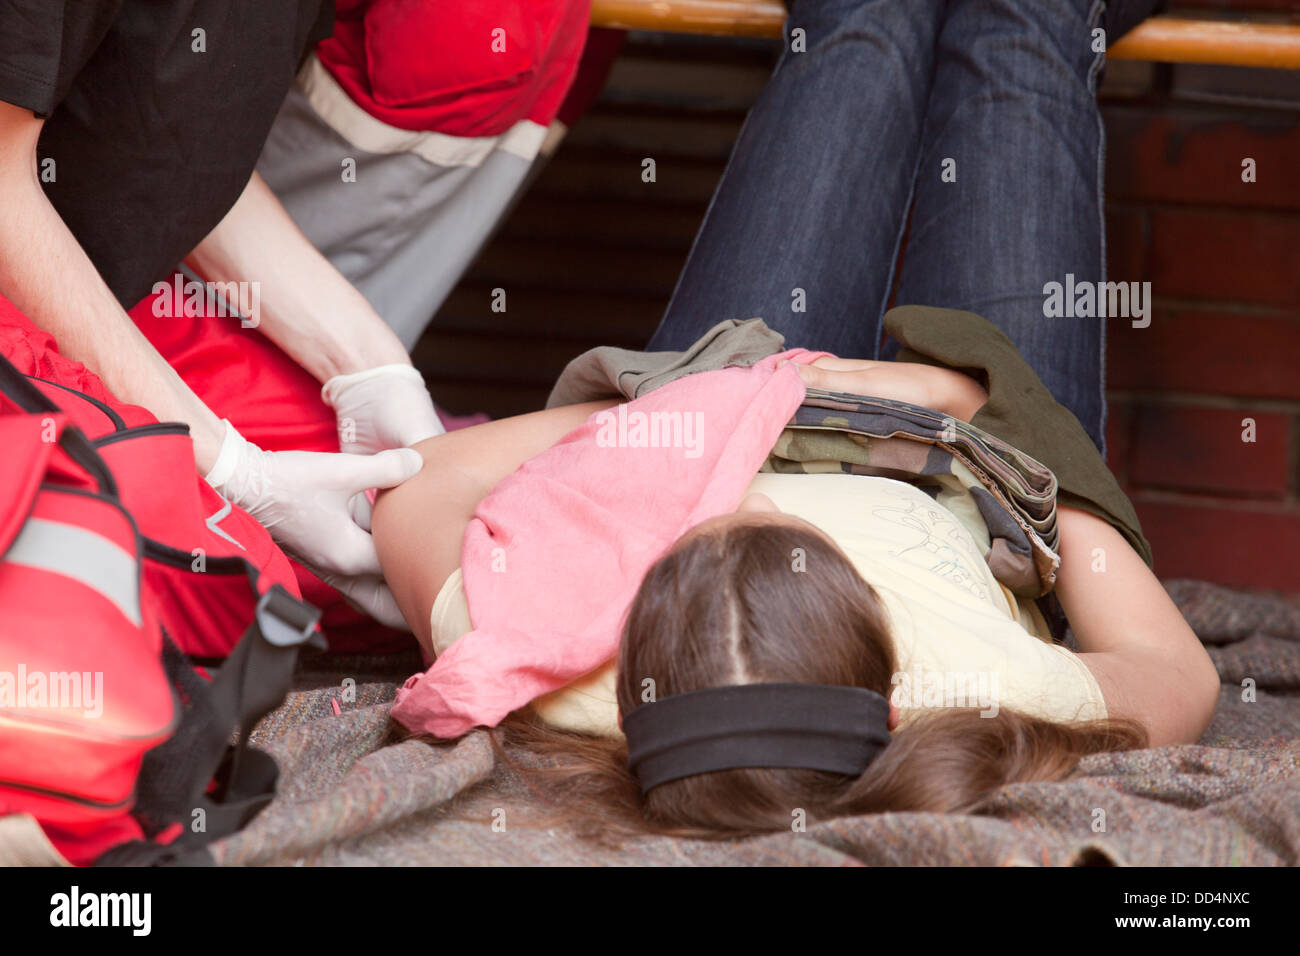 first aid training immobilization - Stock Image